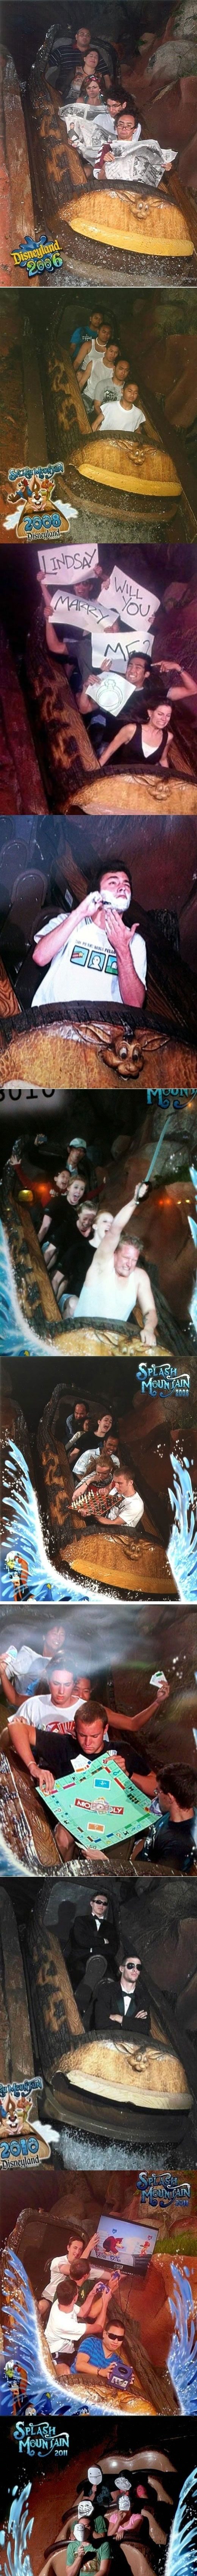 Best of Disneyland's Splash Mountain...I love the marriage proposal <3